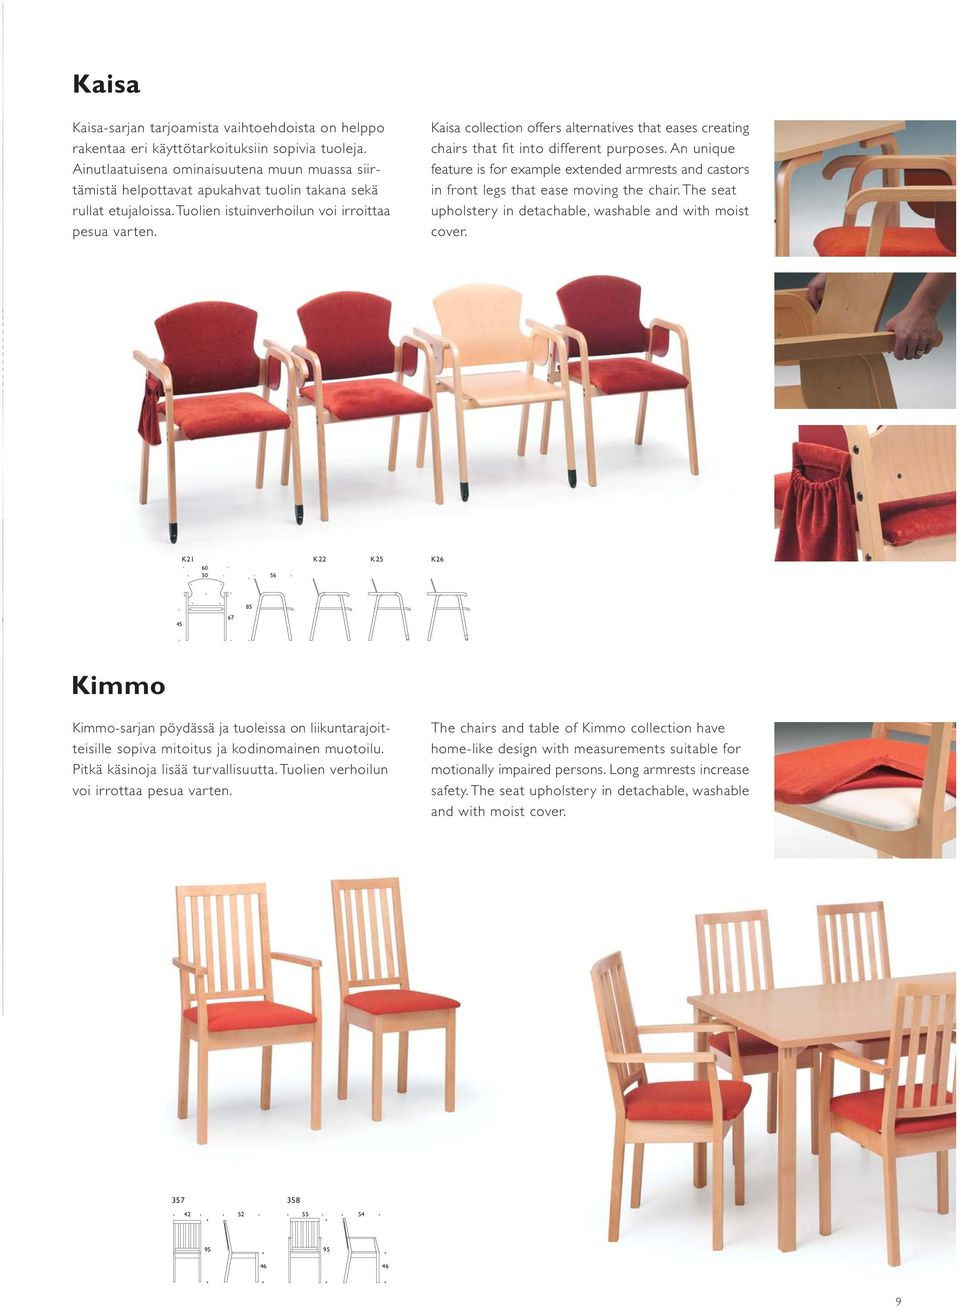 Kaisa collection offers alternatives that eases creating chairs that fit into different purposes.